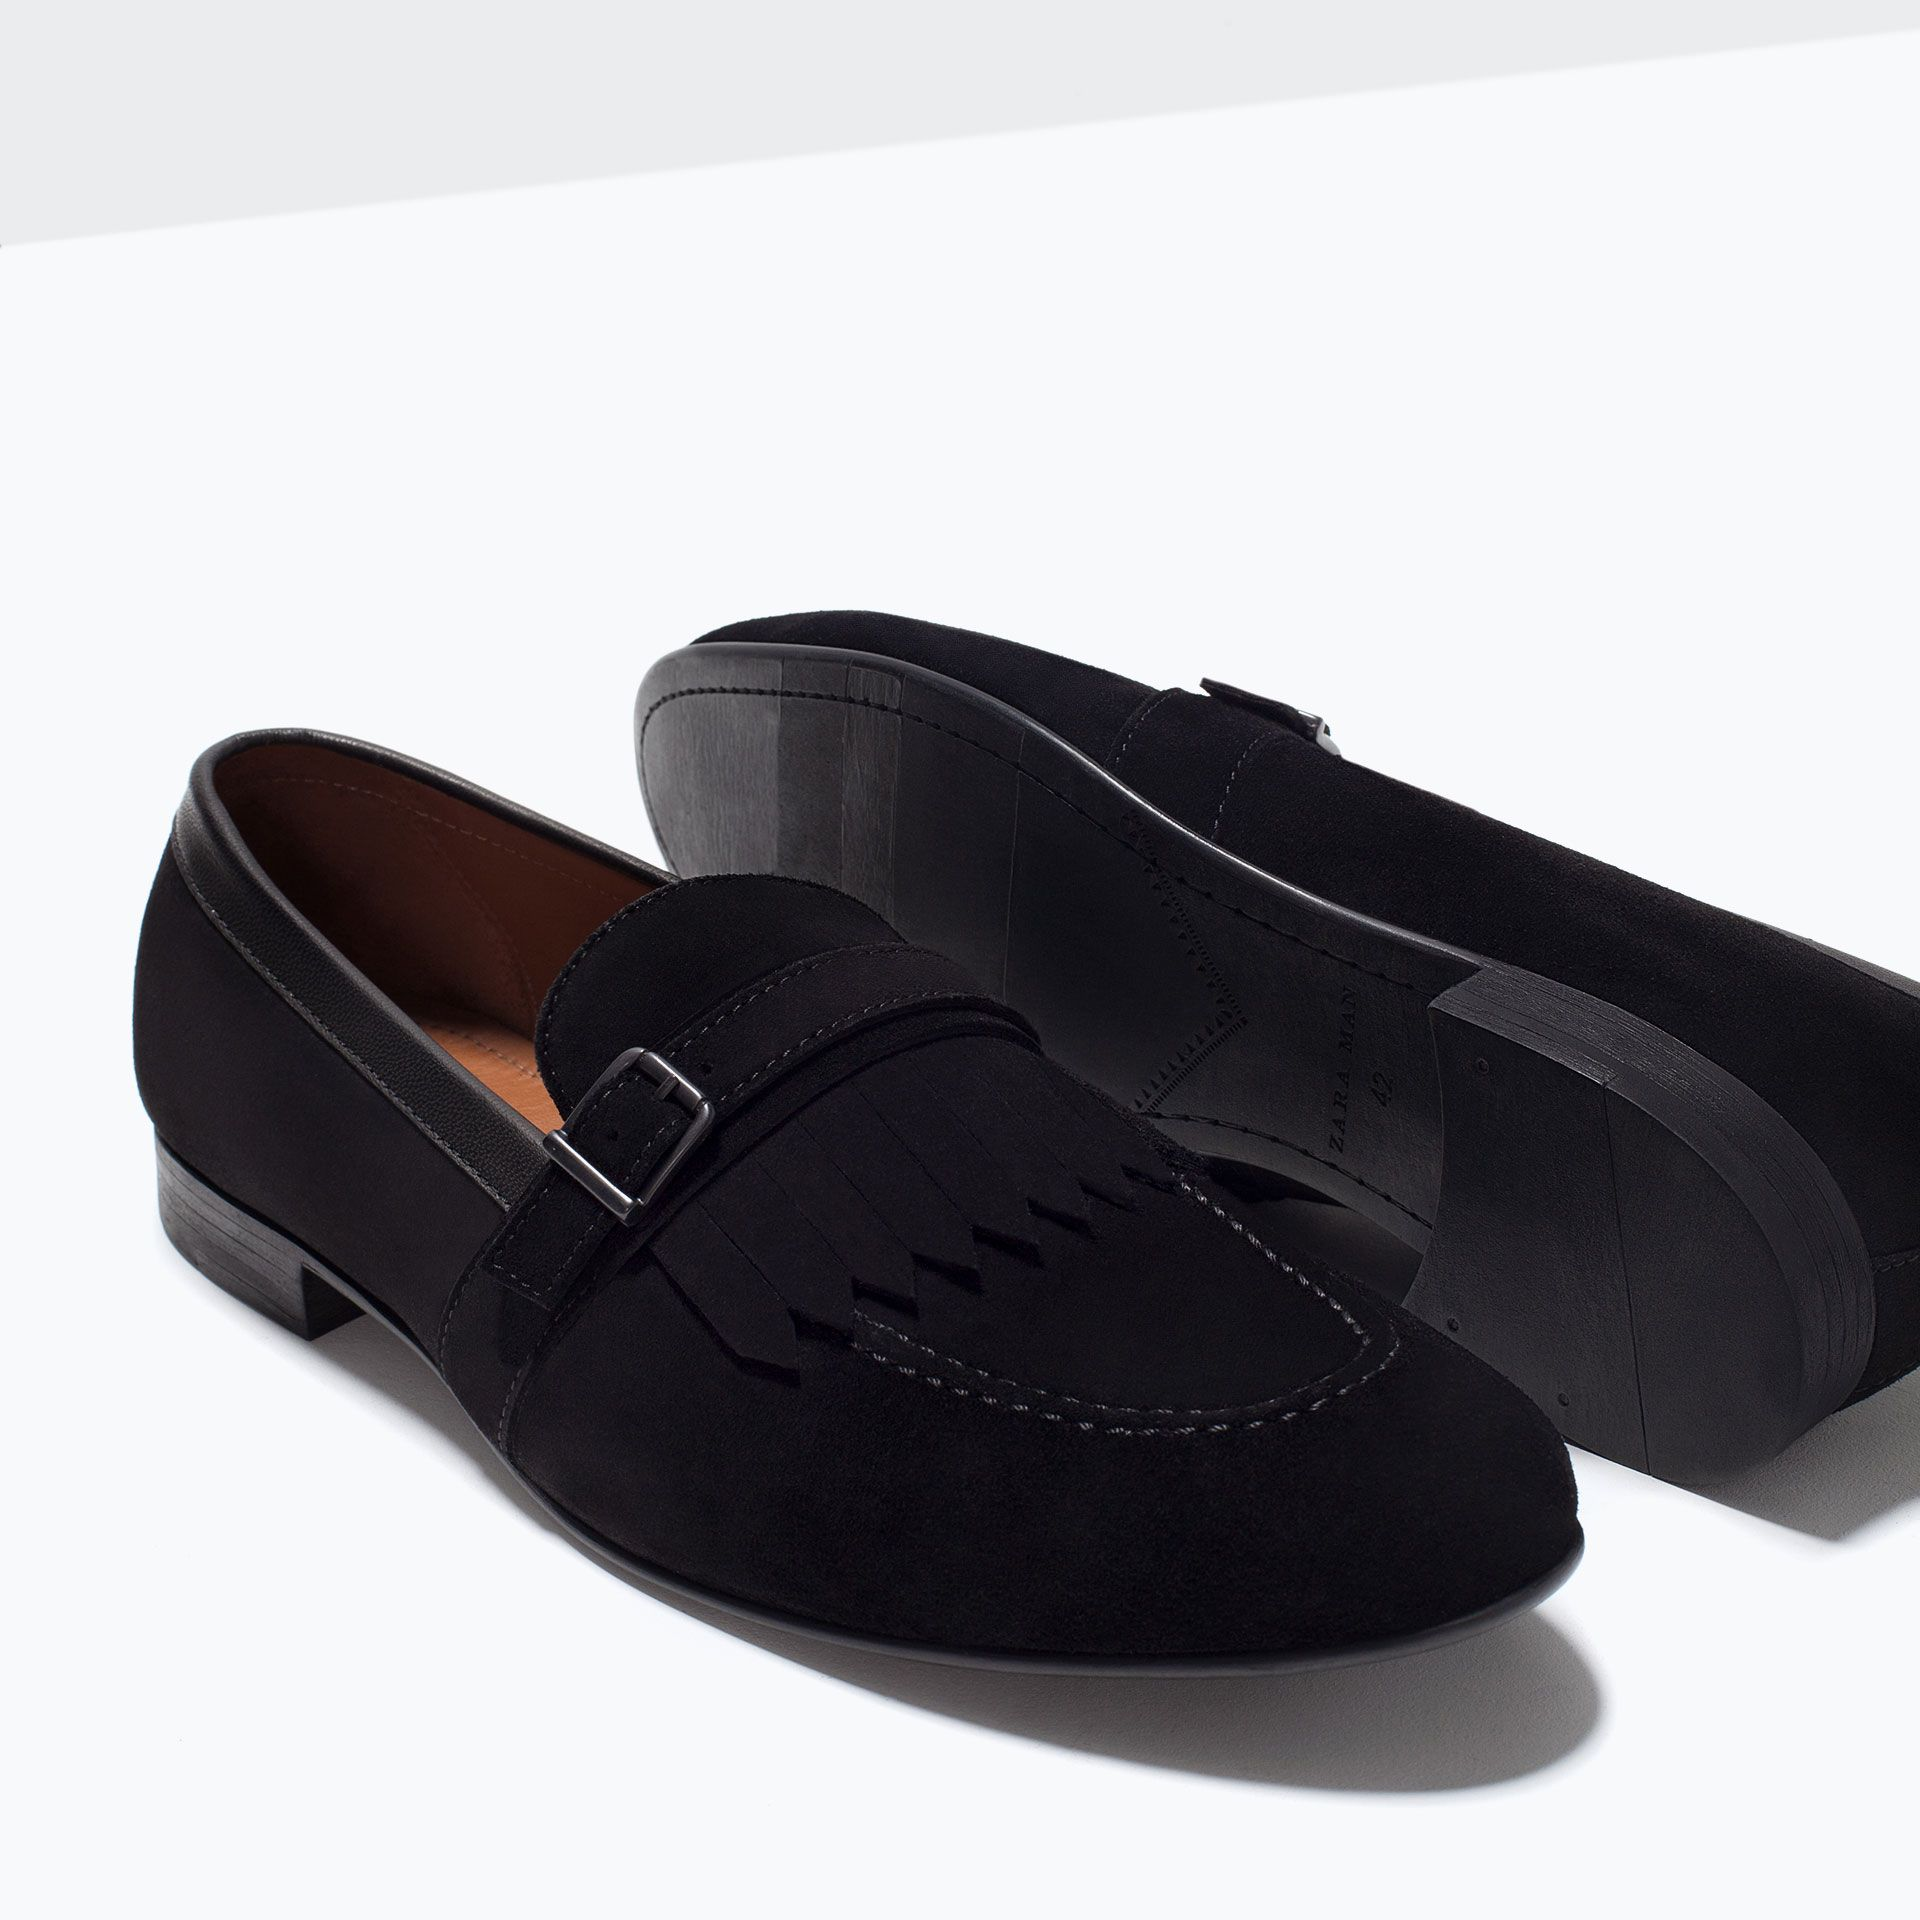 ZARA - MAN - LEATHER MOCCASIN WITH FRINGES